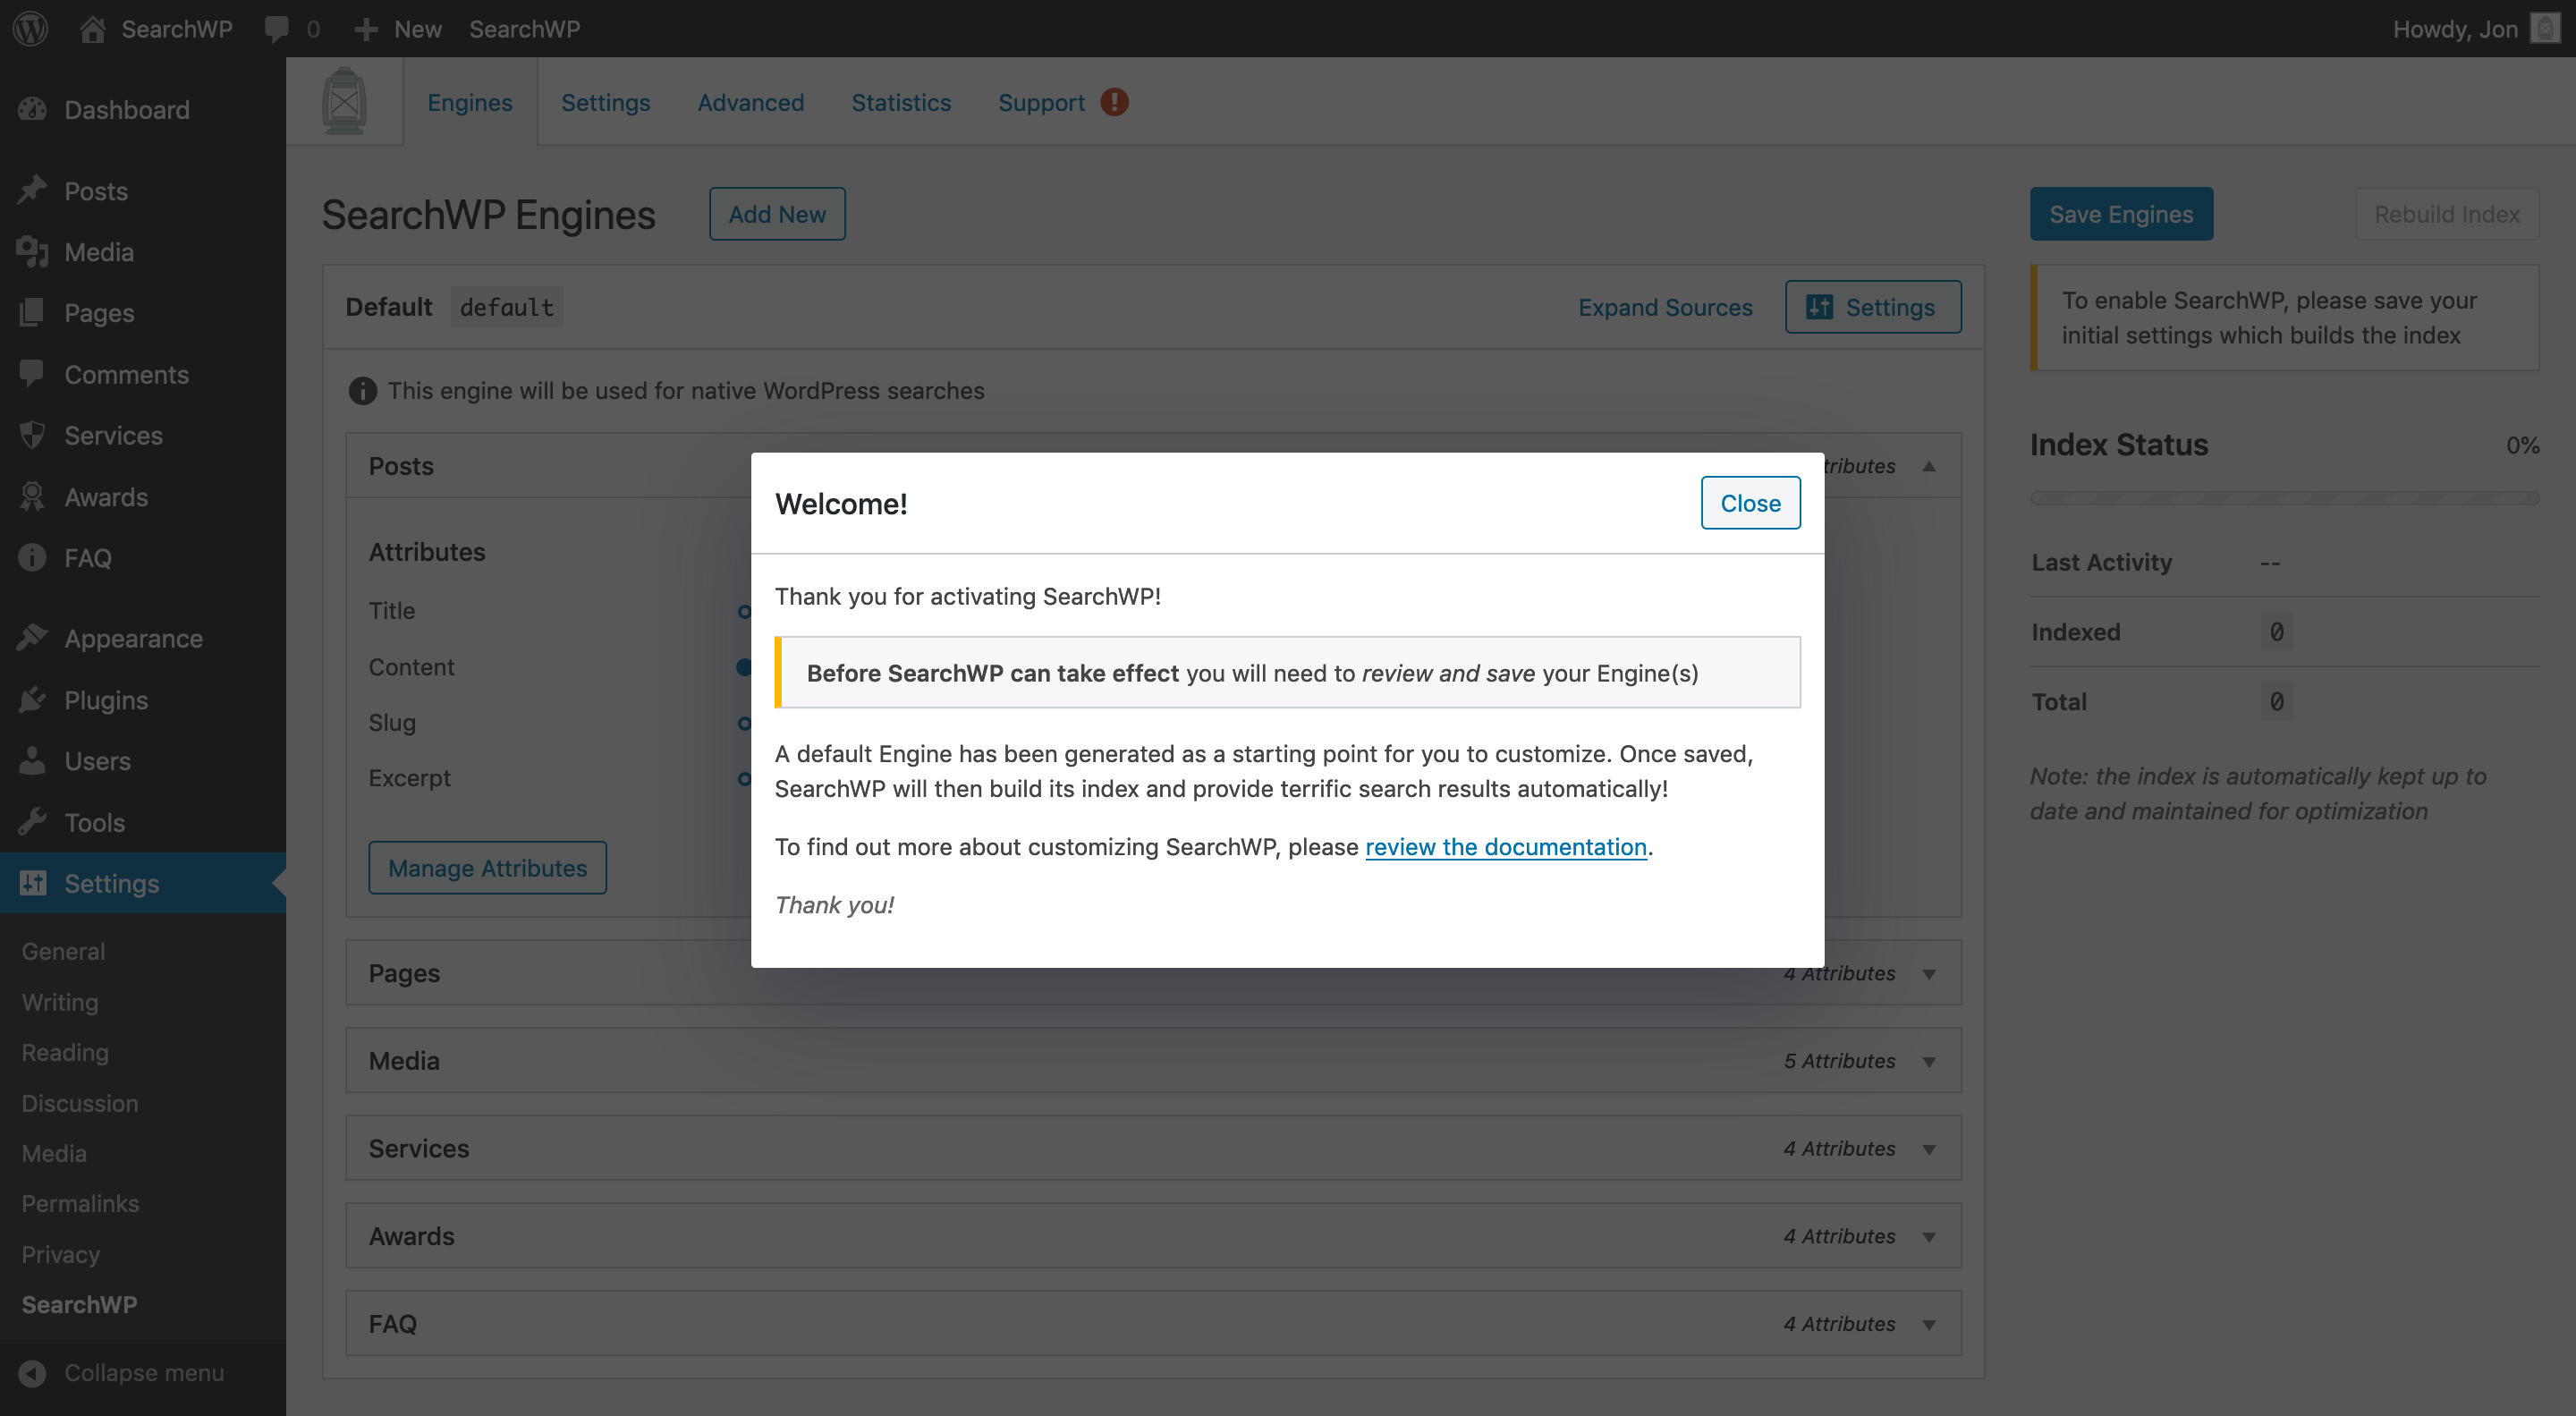 Screenshot of the Welcome dialog in SearchWP